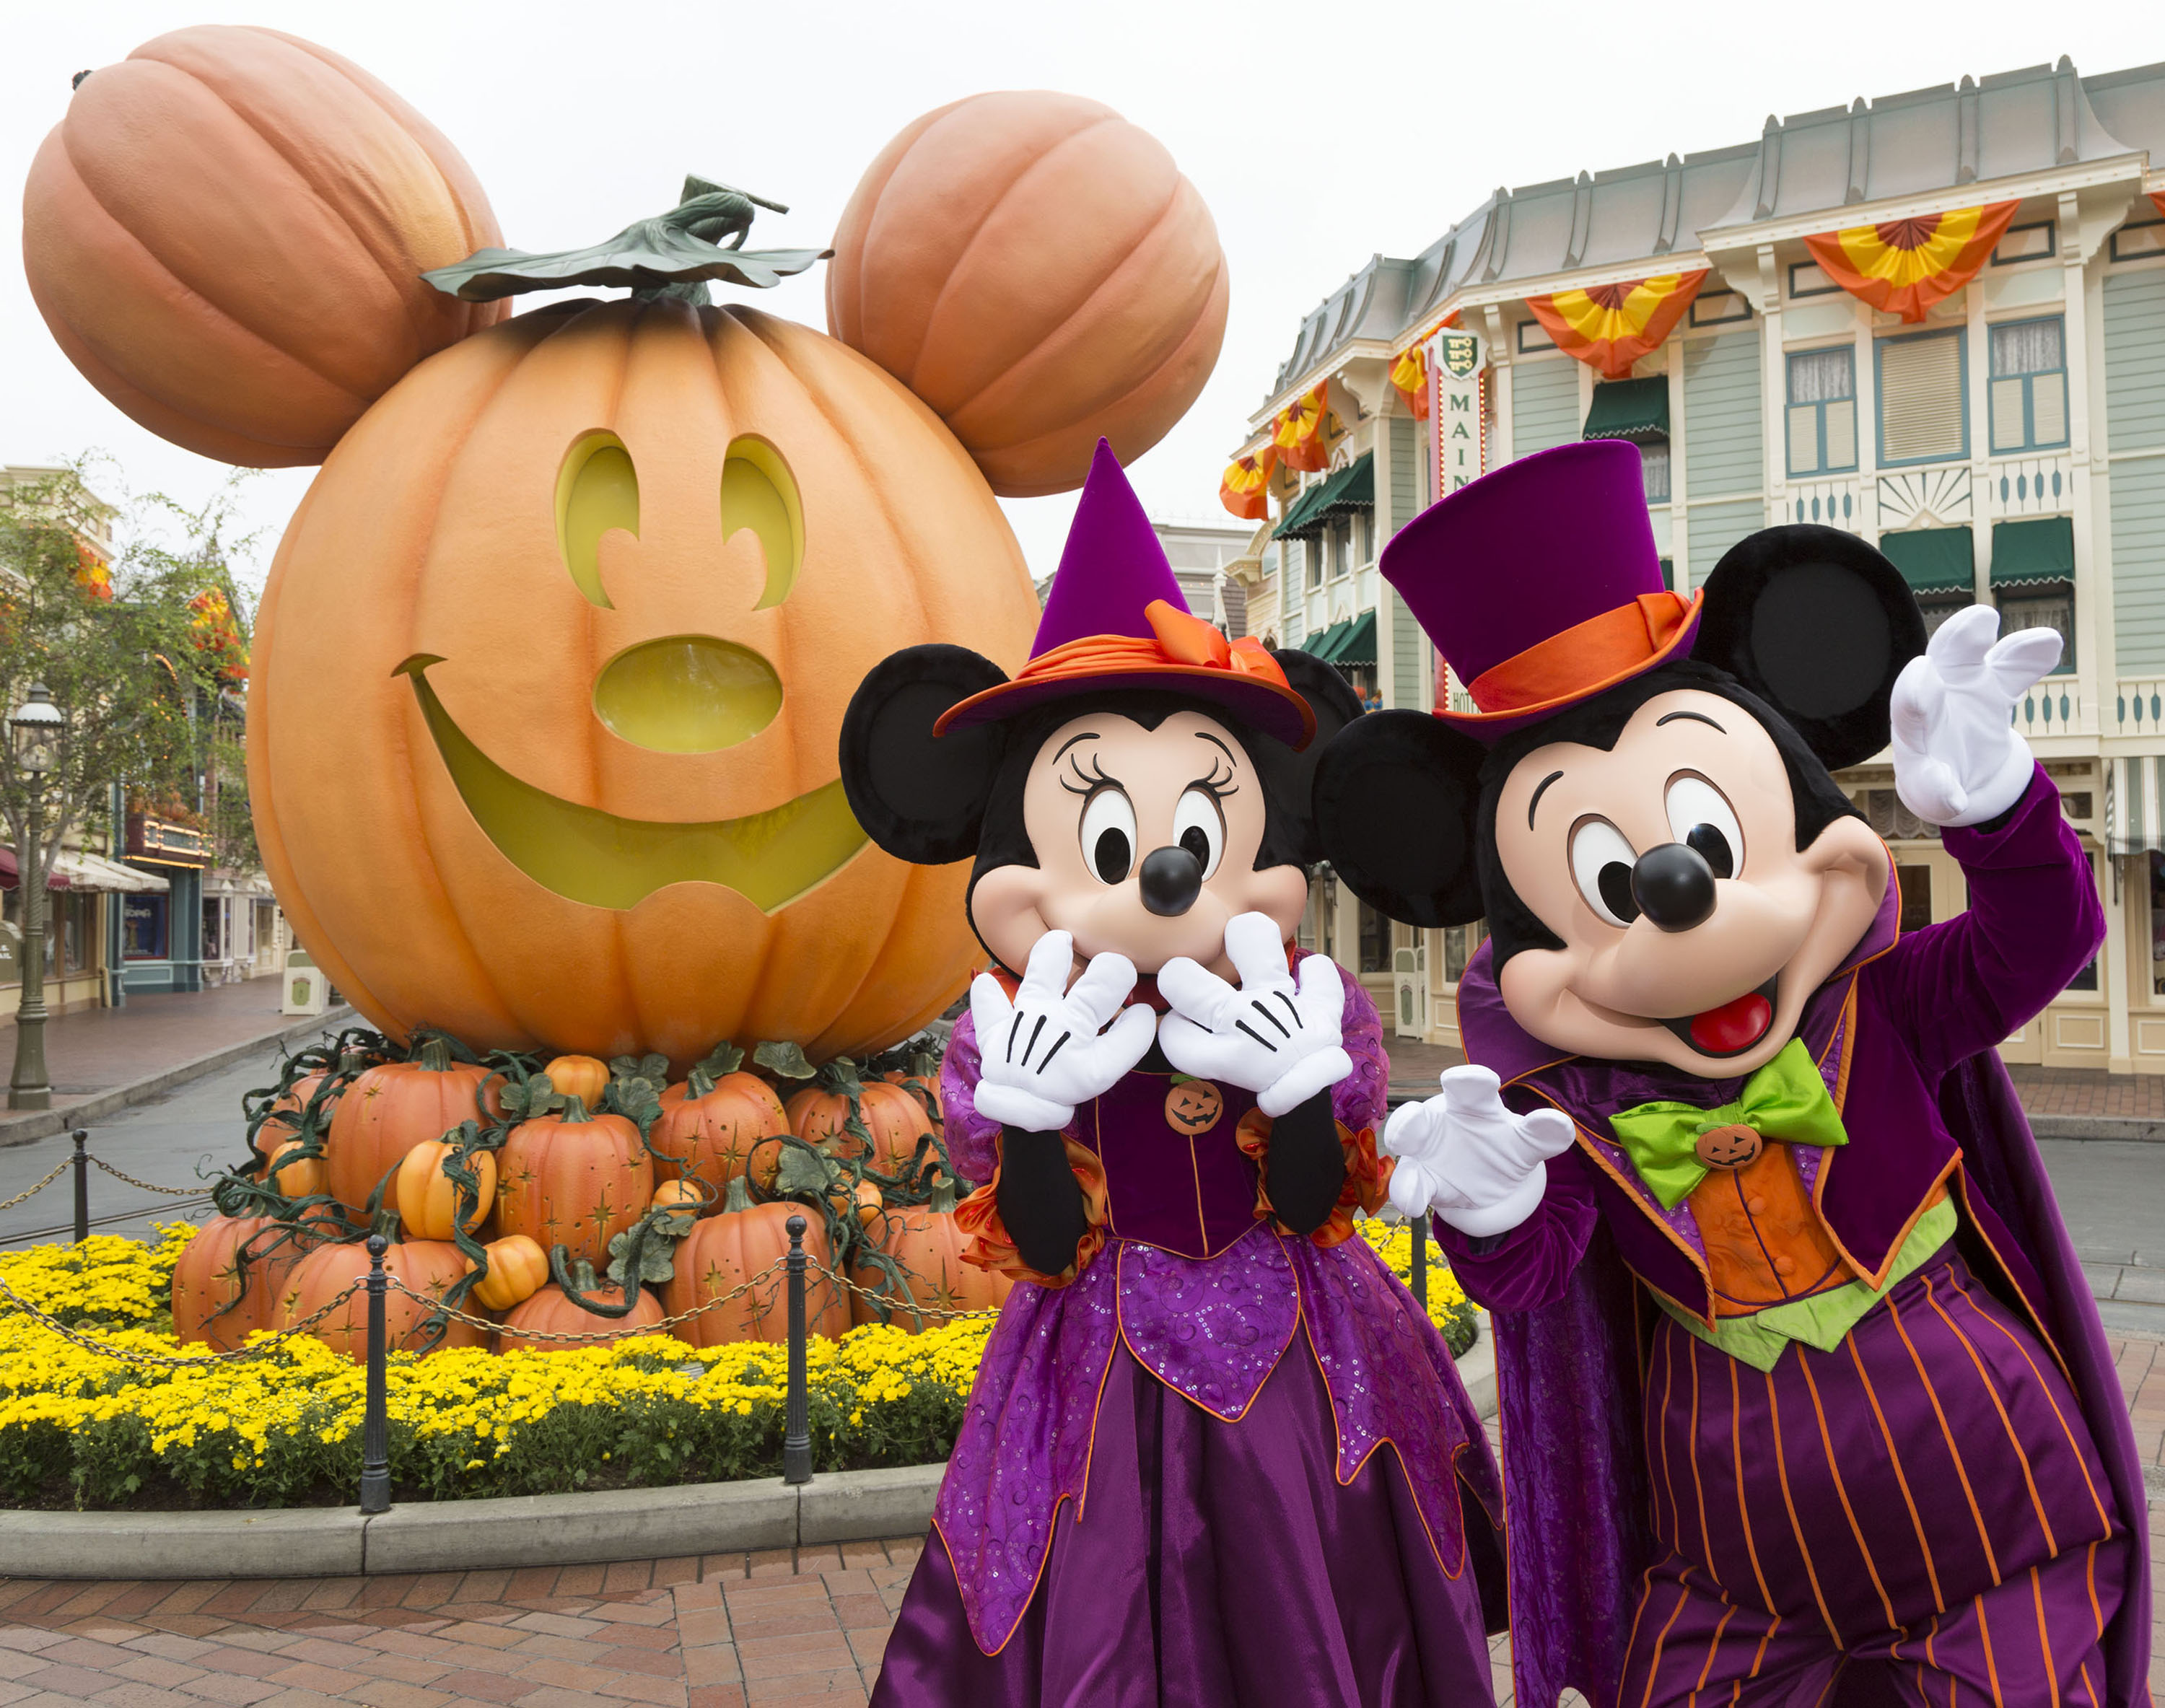 MICKEY MOUSE AND MINNIE MOUSE CELEBRATE HALLOWEEN TIME (ANAHEIM, Calif.) –– During Halloween Time at the Disneyland Resort, guests will encounter beloved characters dressed in fun seasonal costumes, including Mickey Mouse and Minnie Mouse. The Halloween season at the Disneyland Resort, which also features special attractions and entertainment, runs from Sept. 7 through Oct. 31, 2018. (Scott Brinegar/Disneyland Resort)